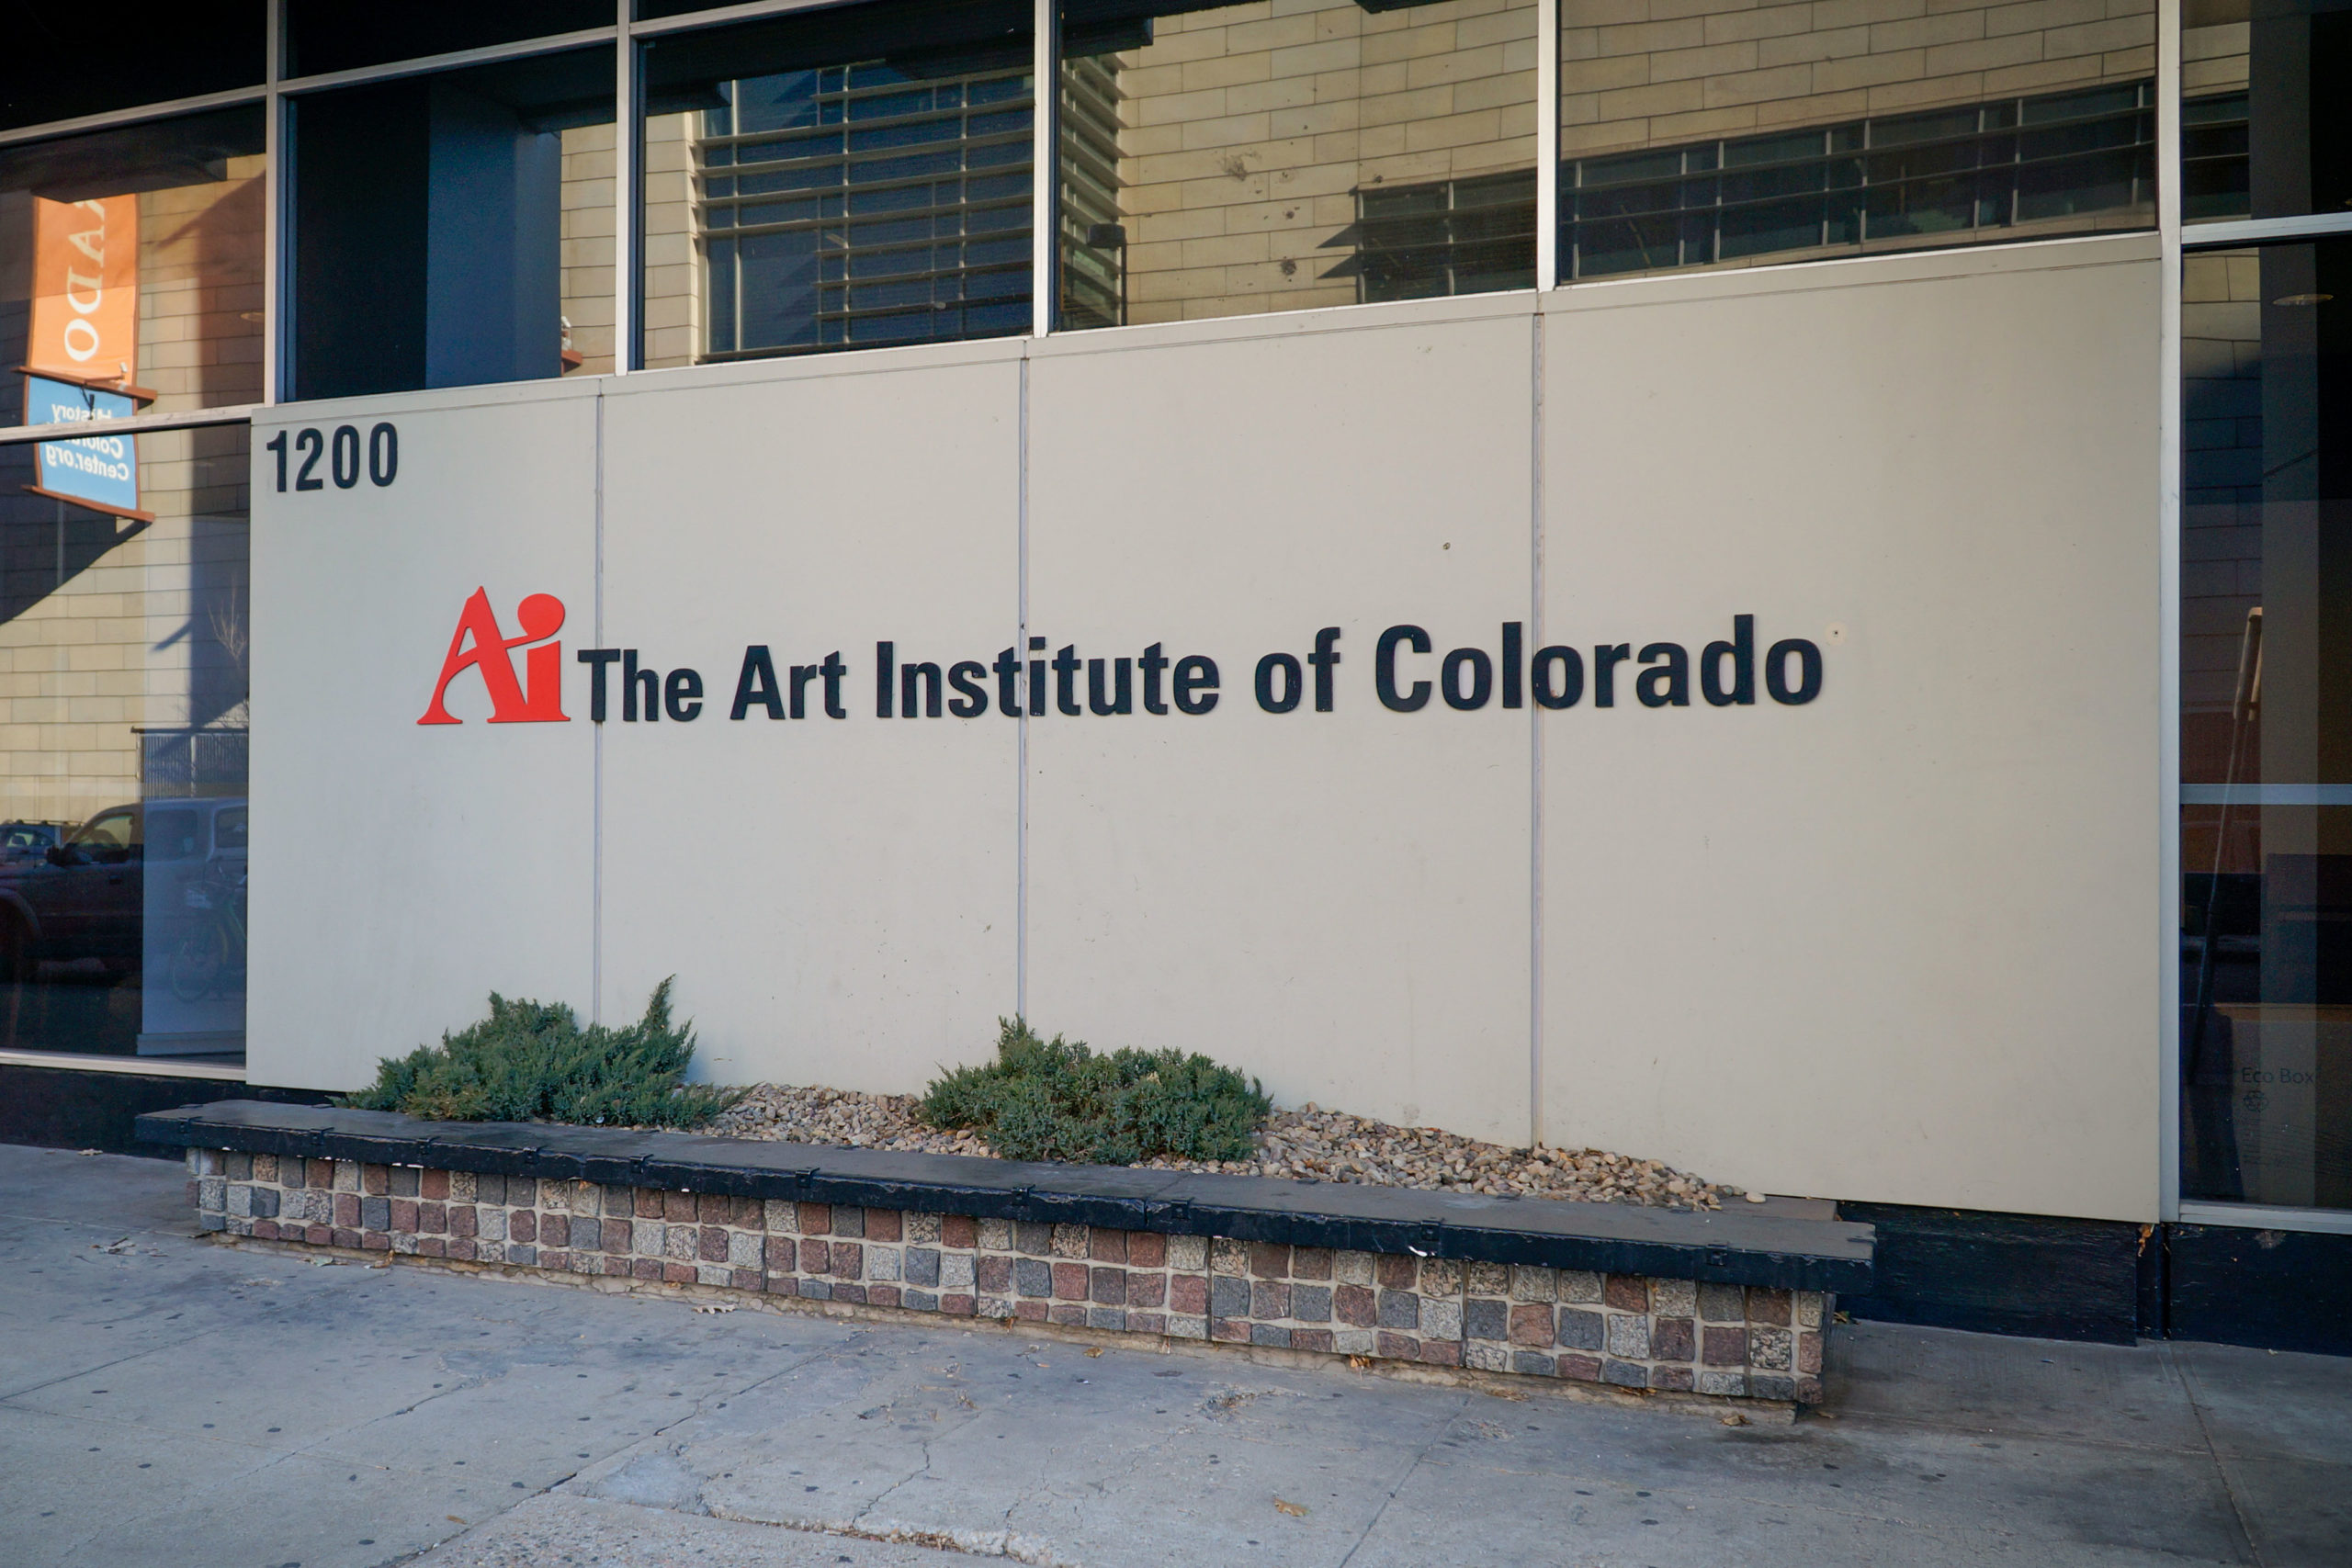 The exterior of the former Art Institute of Colorado on Lincoln Street in Denver.